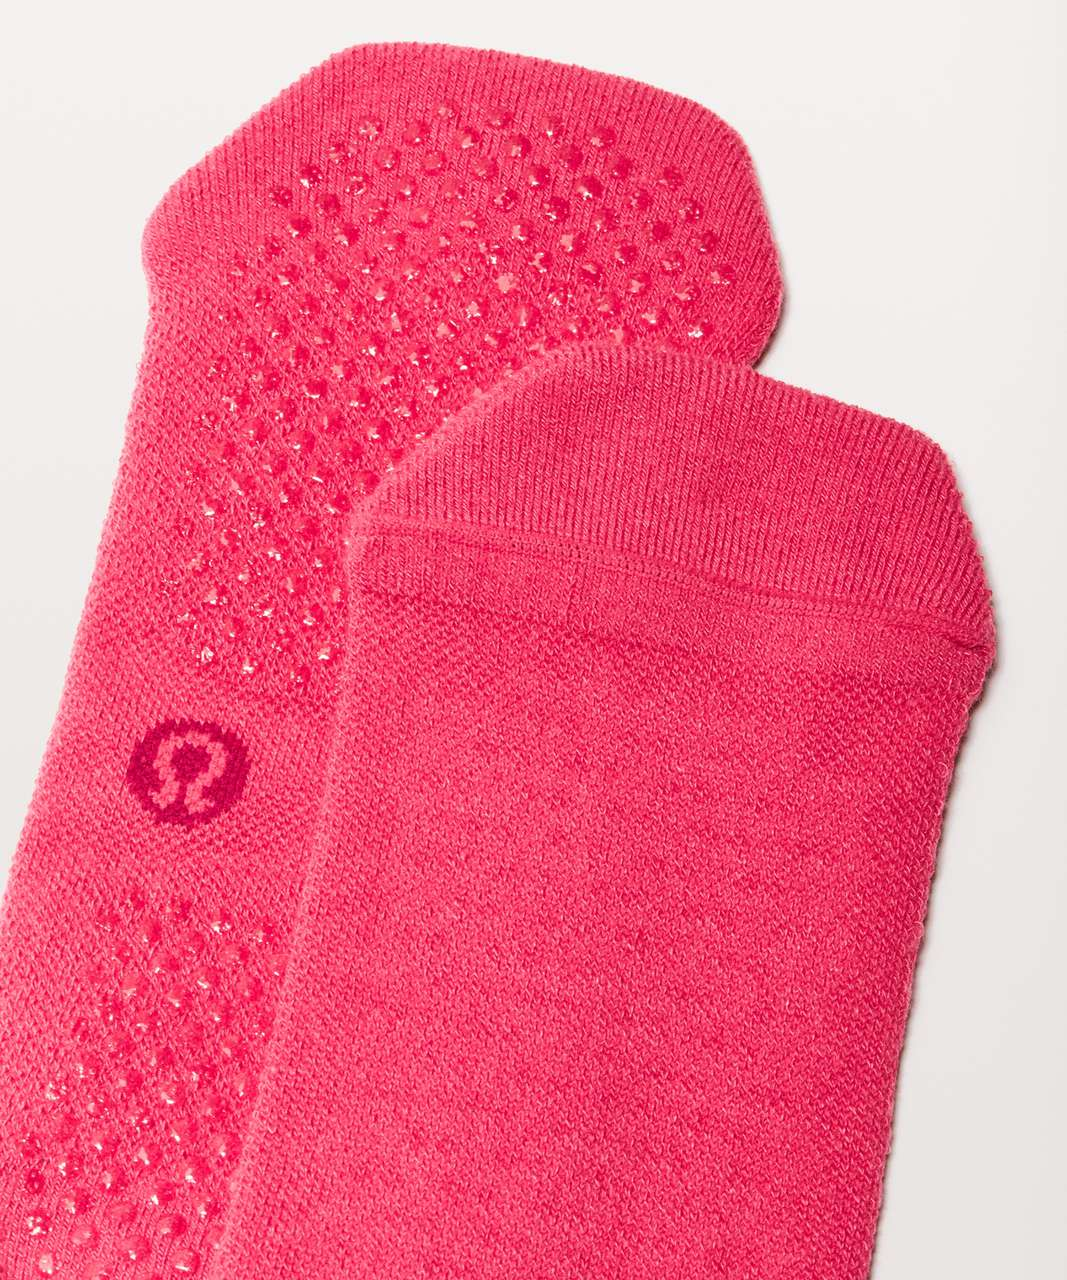 Lululemon Get A Grip Sock - Fuchsia Pink / Ruby Red